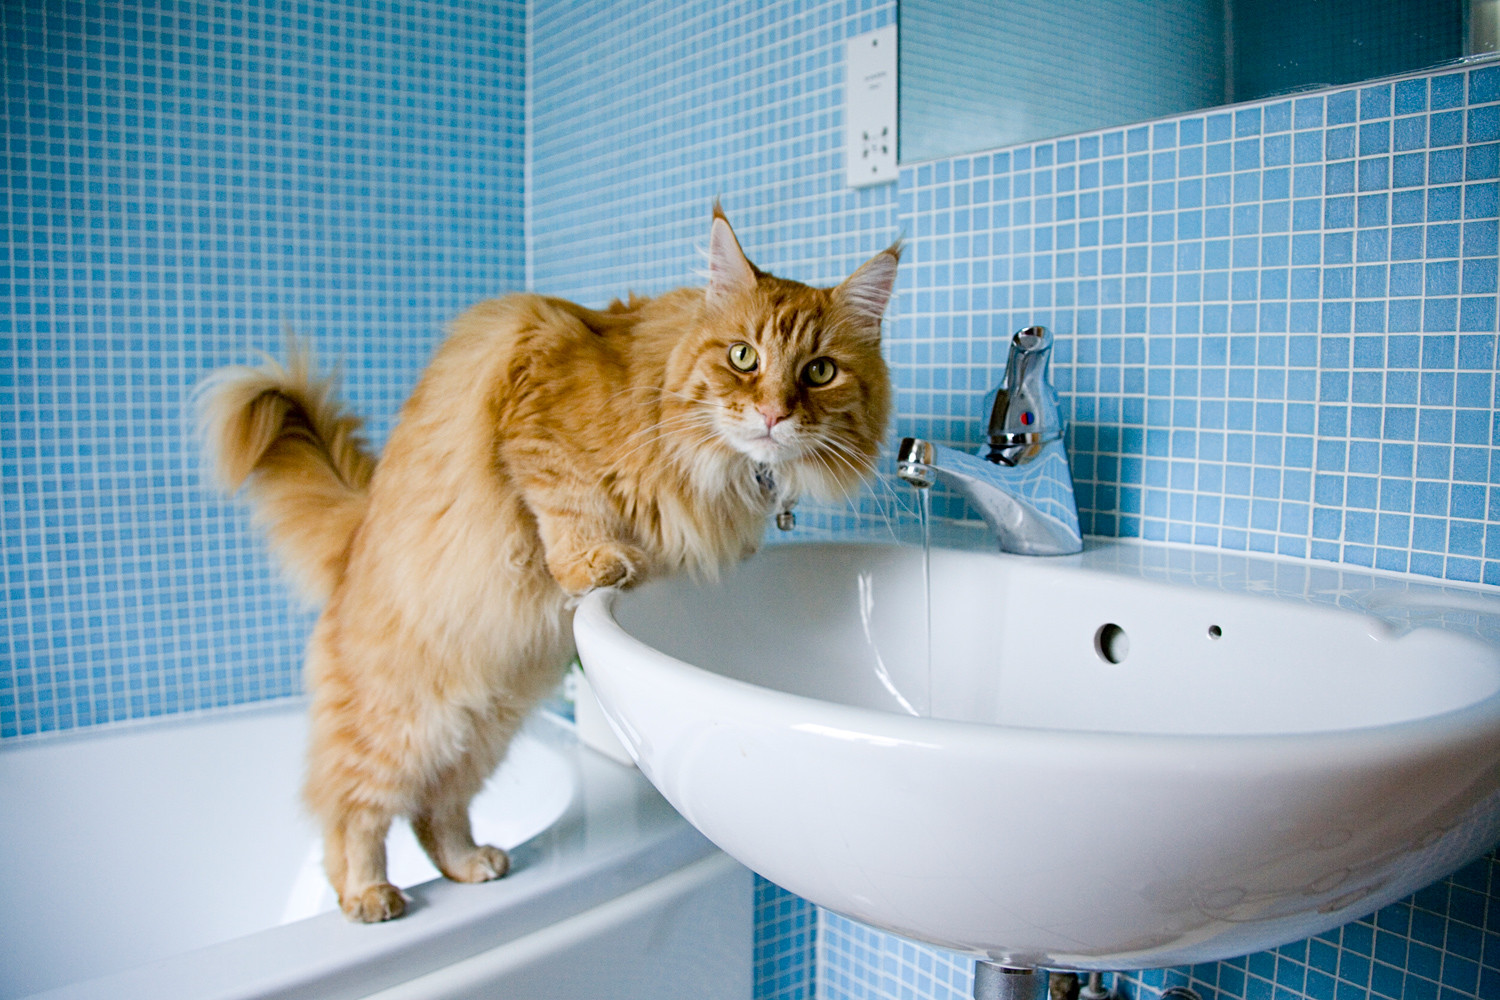 A third-most popular is Main Coon. The average price for such cats on Avito is $301.